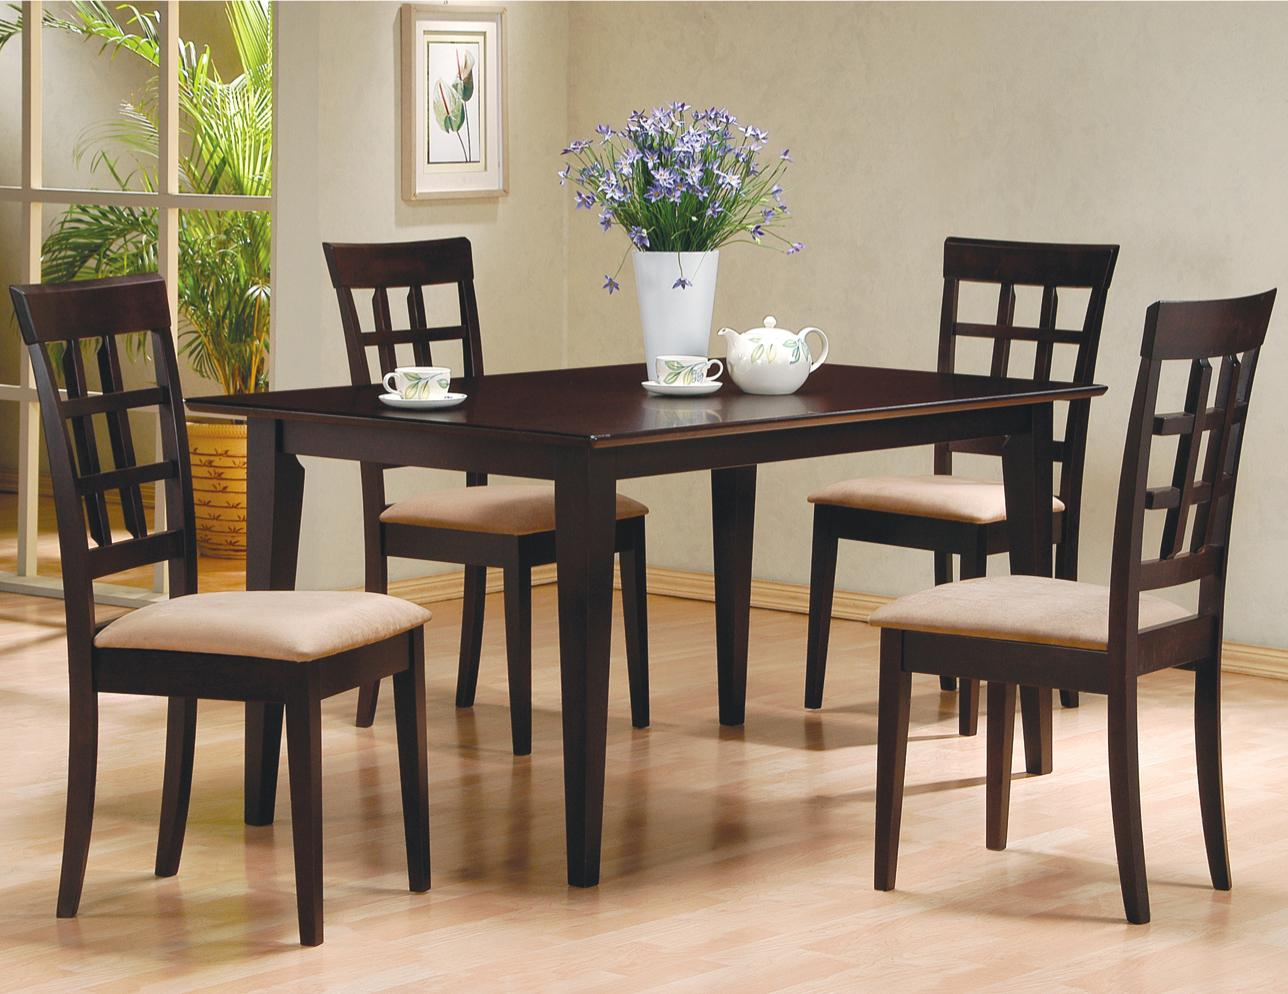 4 person kitchen table Coaster Mix Match Rectangular Casual Dining Leg Table Coaster Fine Furniture